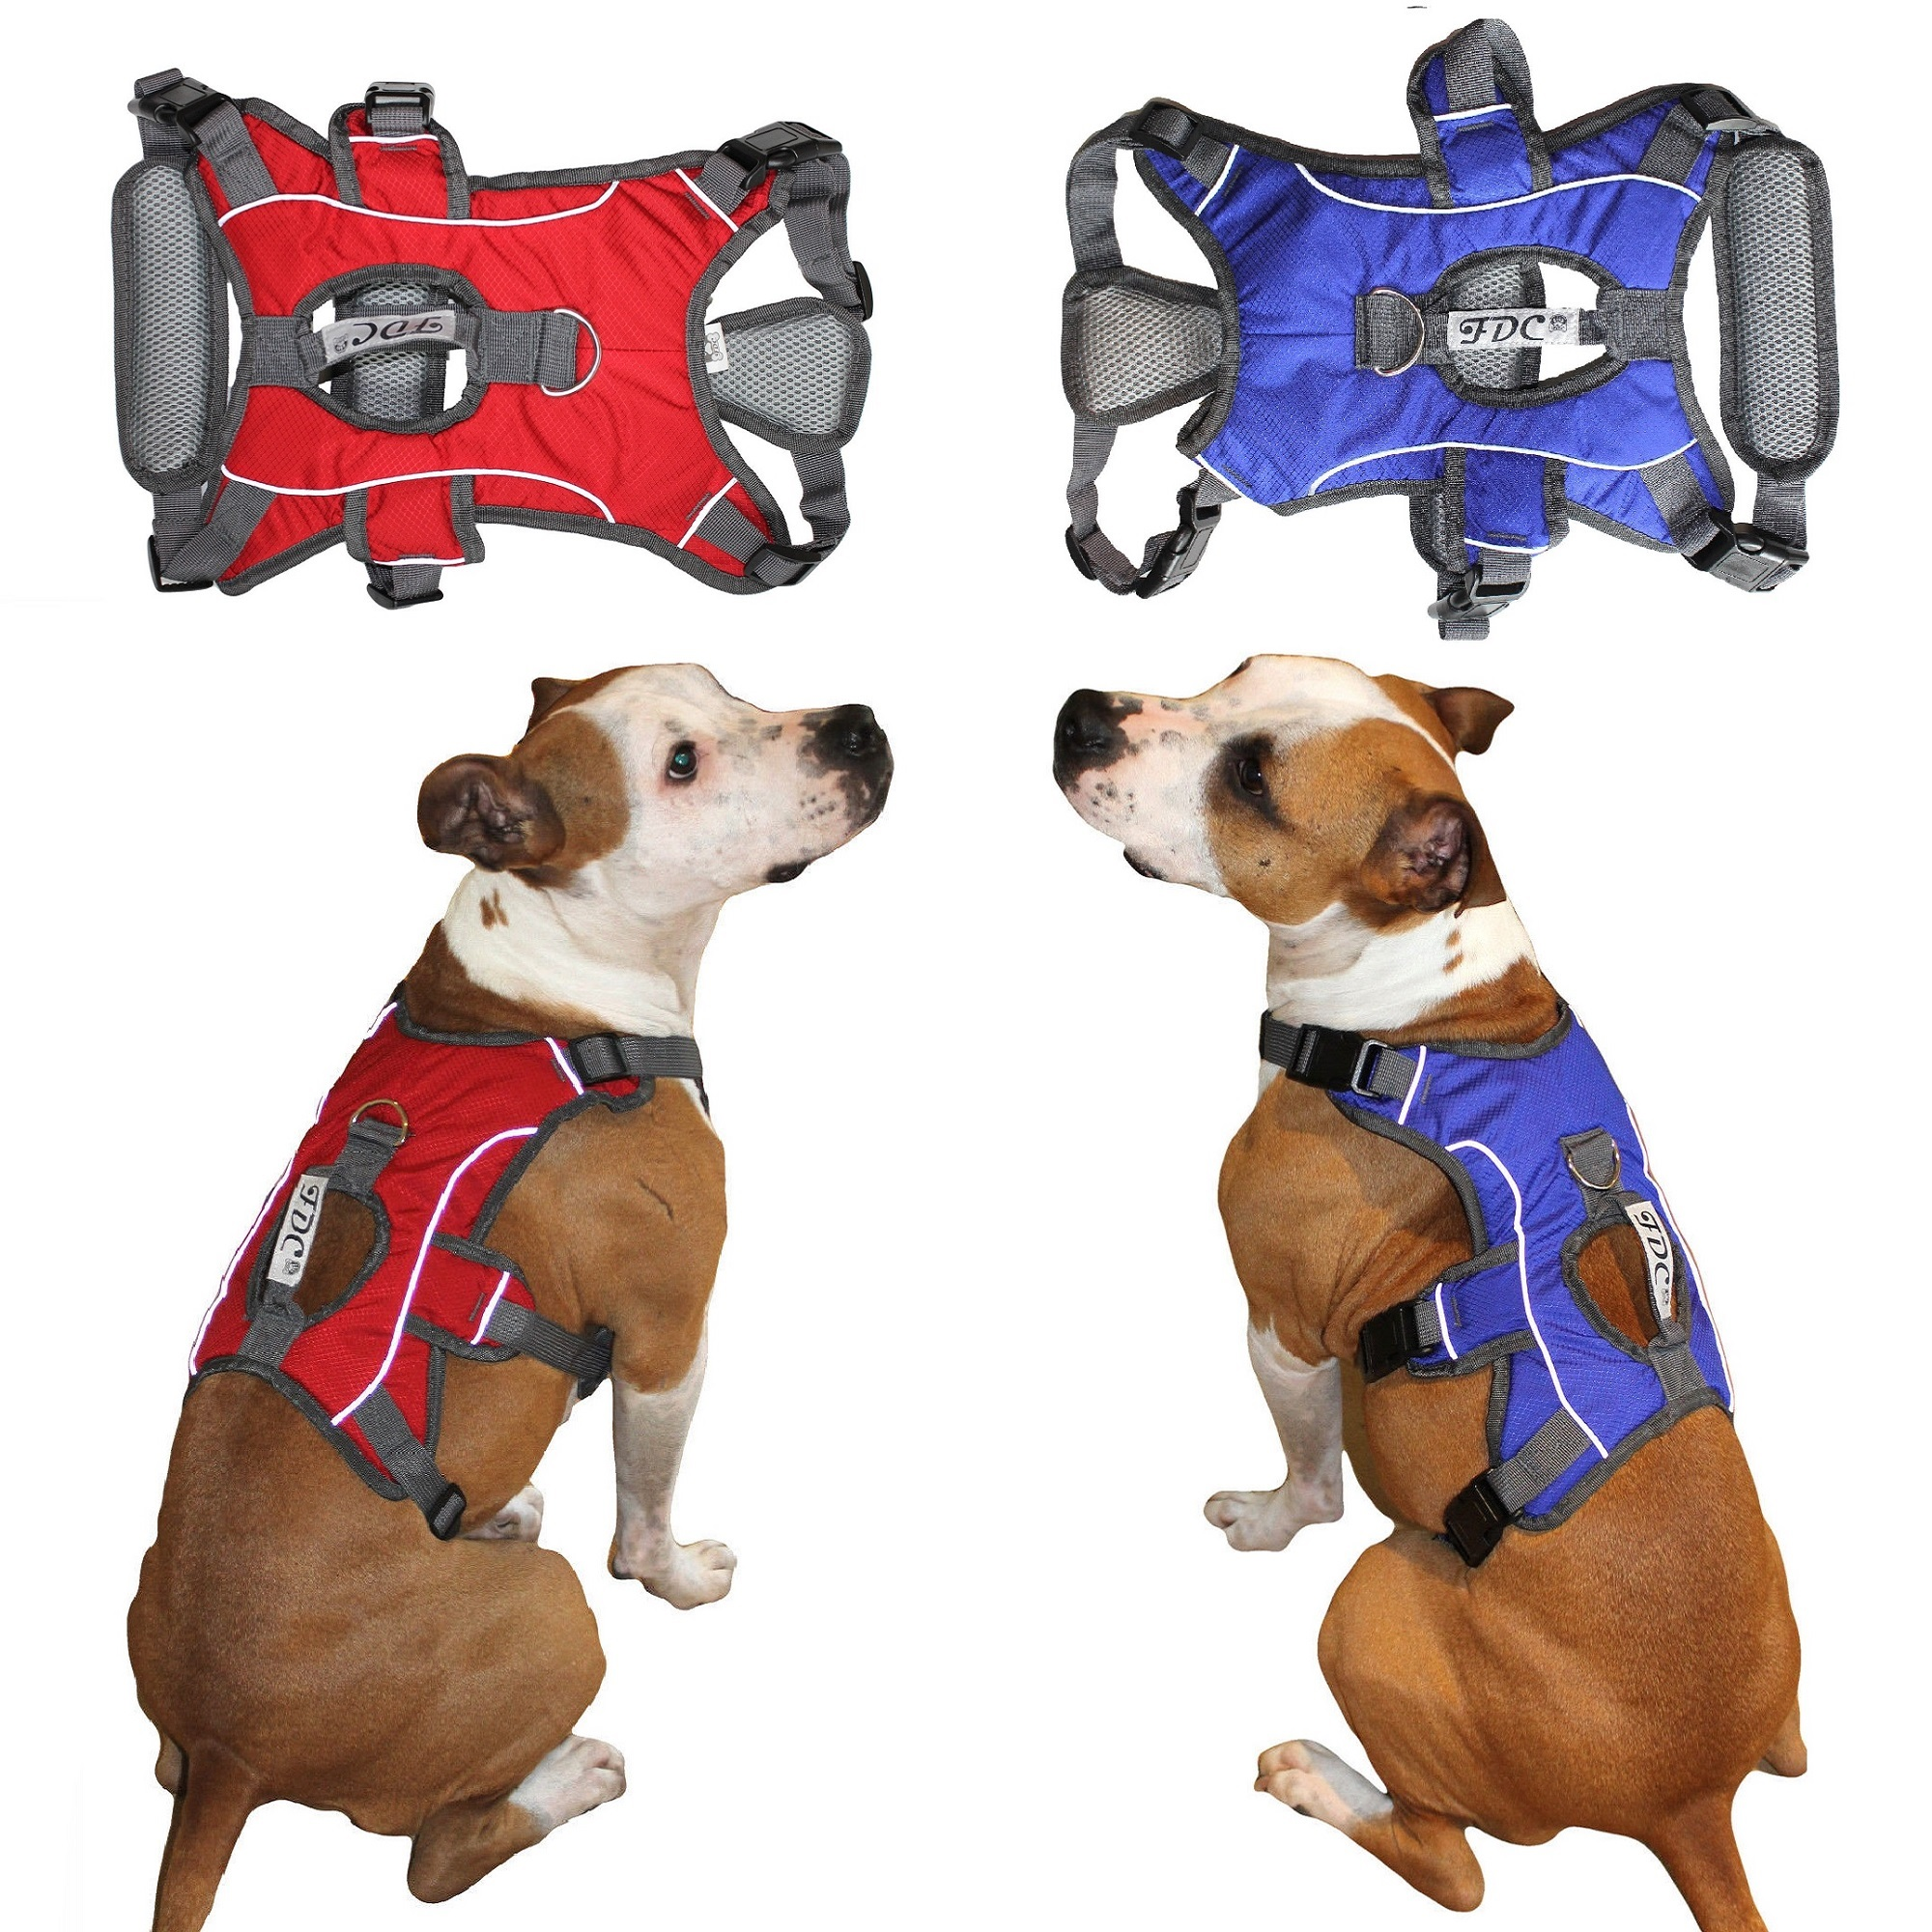 "HEAVY DUTY Durable No-Pull Comfortable Walking Working Dog Harness Vest with HANDLE and REFLECTIVE Stripes PADDED Adjustable for Medium and Large Dogs Size (M: CHEST 20"" - 26"", Red)"